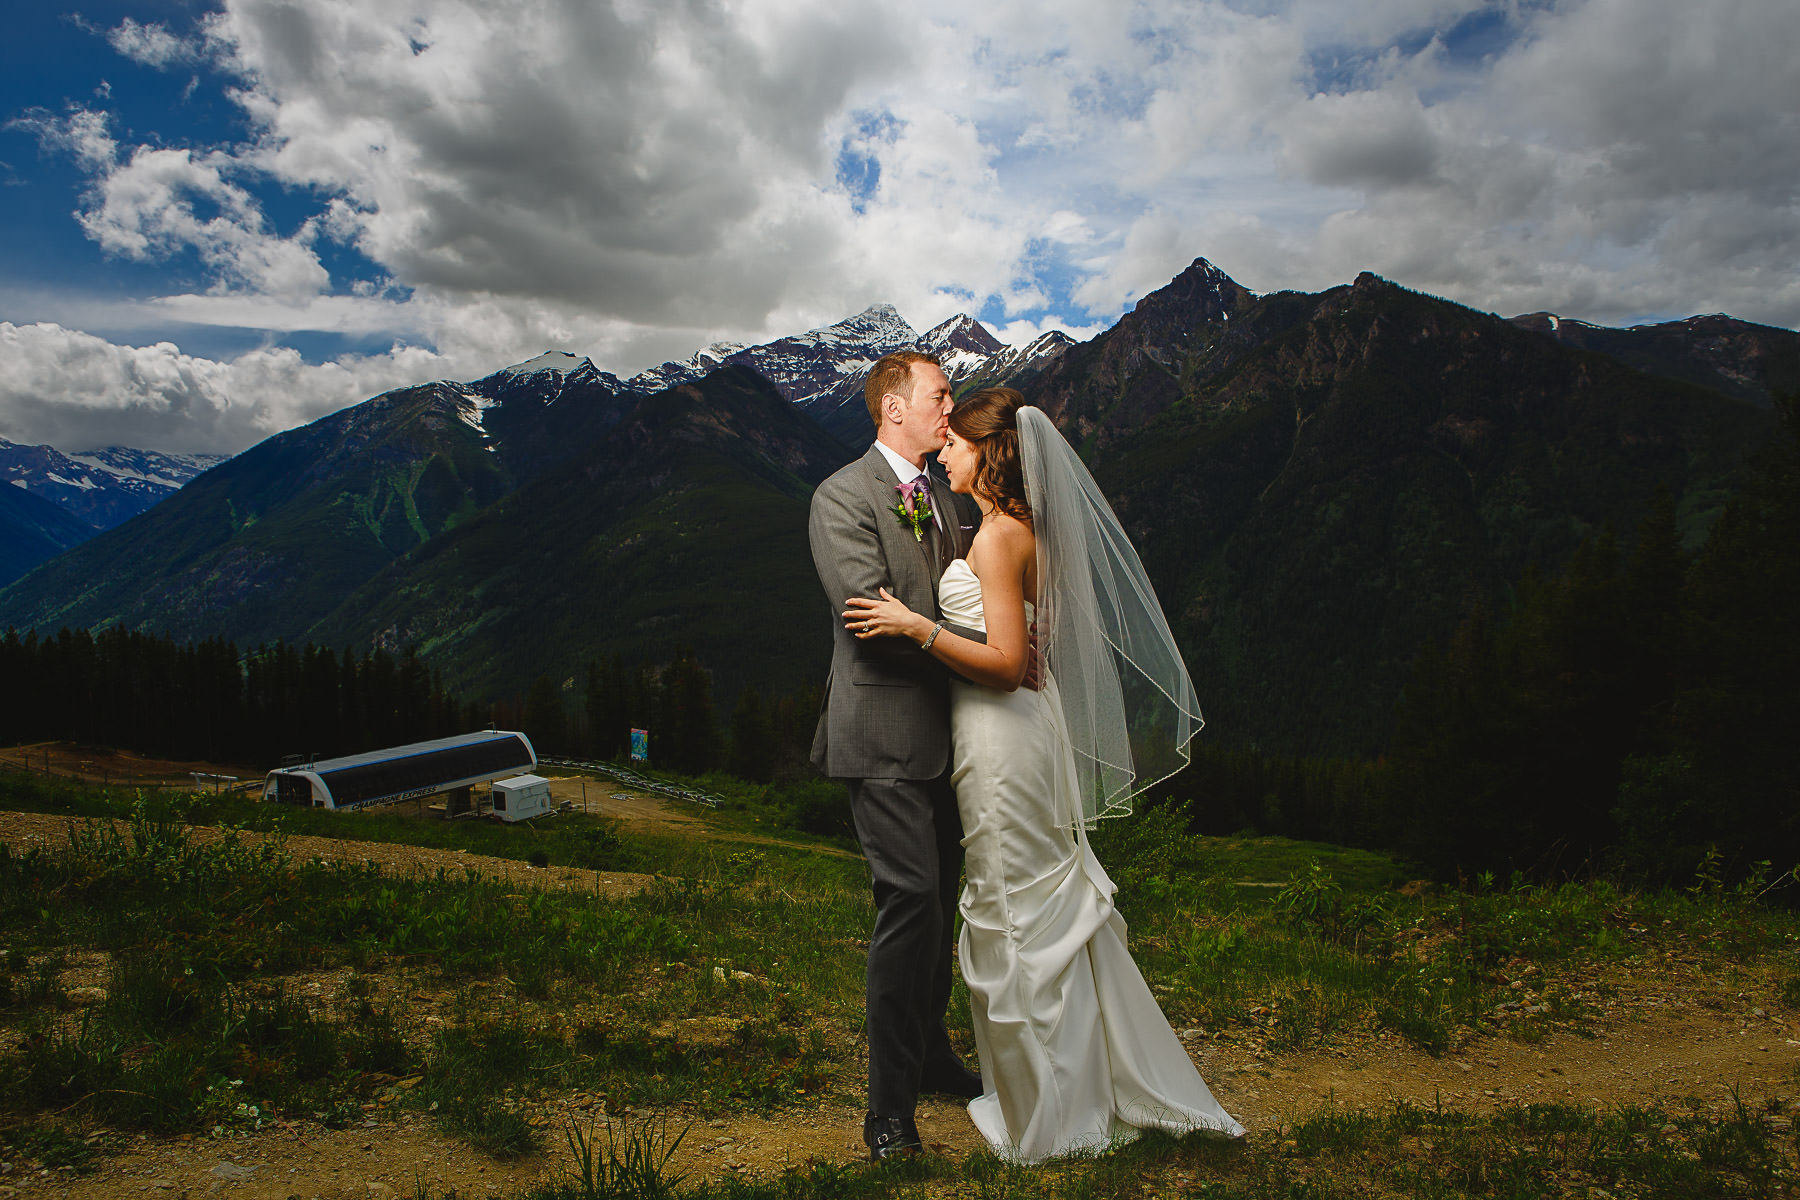 Bride and groom with ski lift in background at Panorama Ski Resort